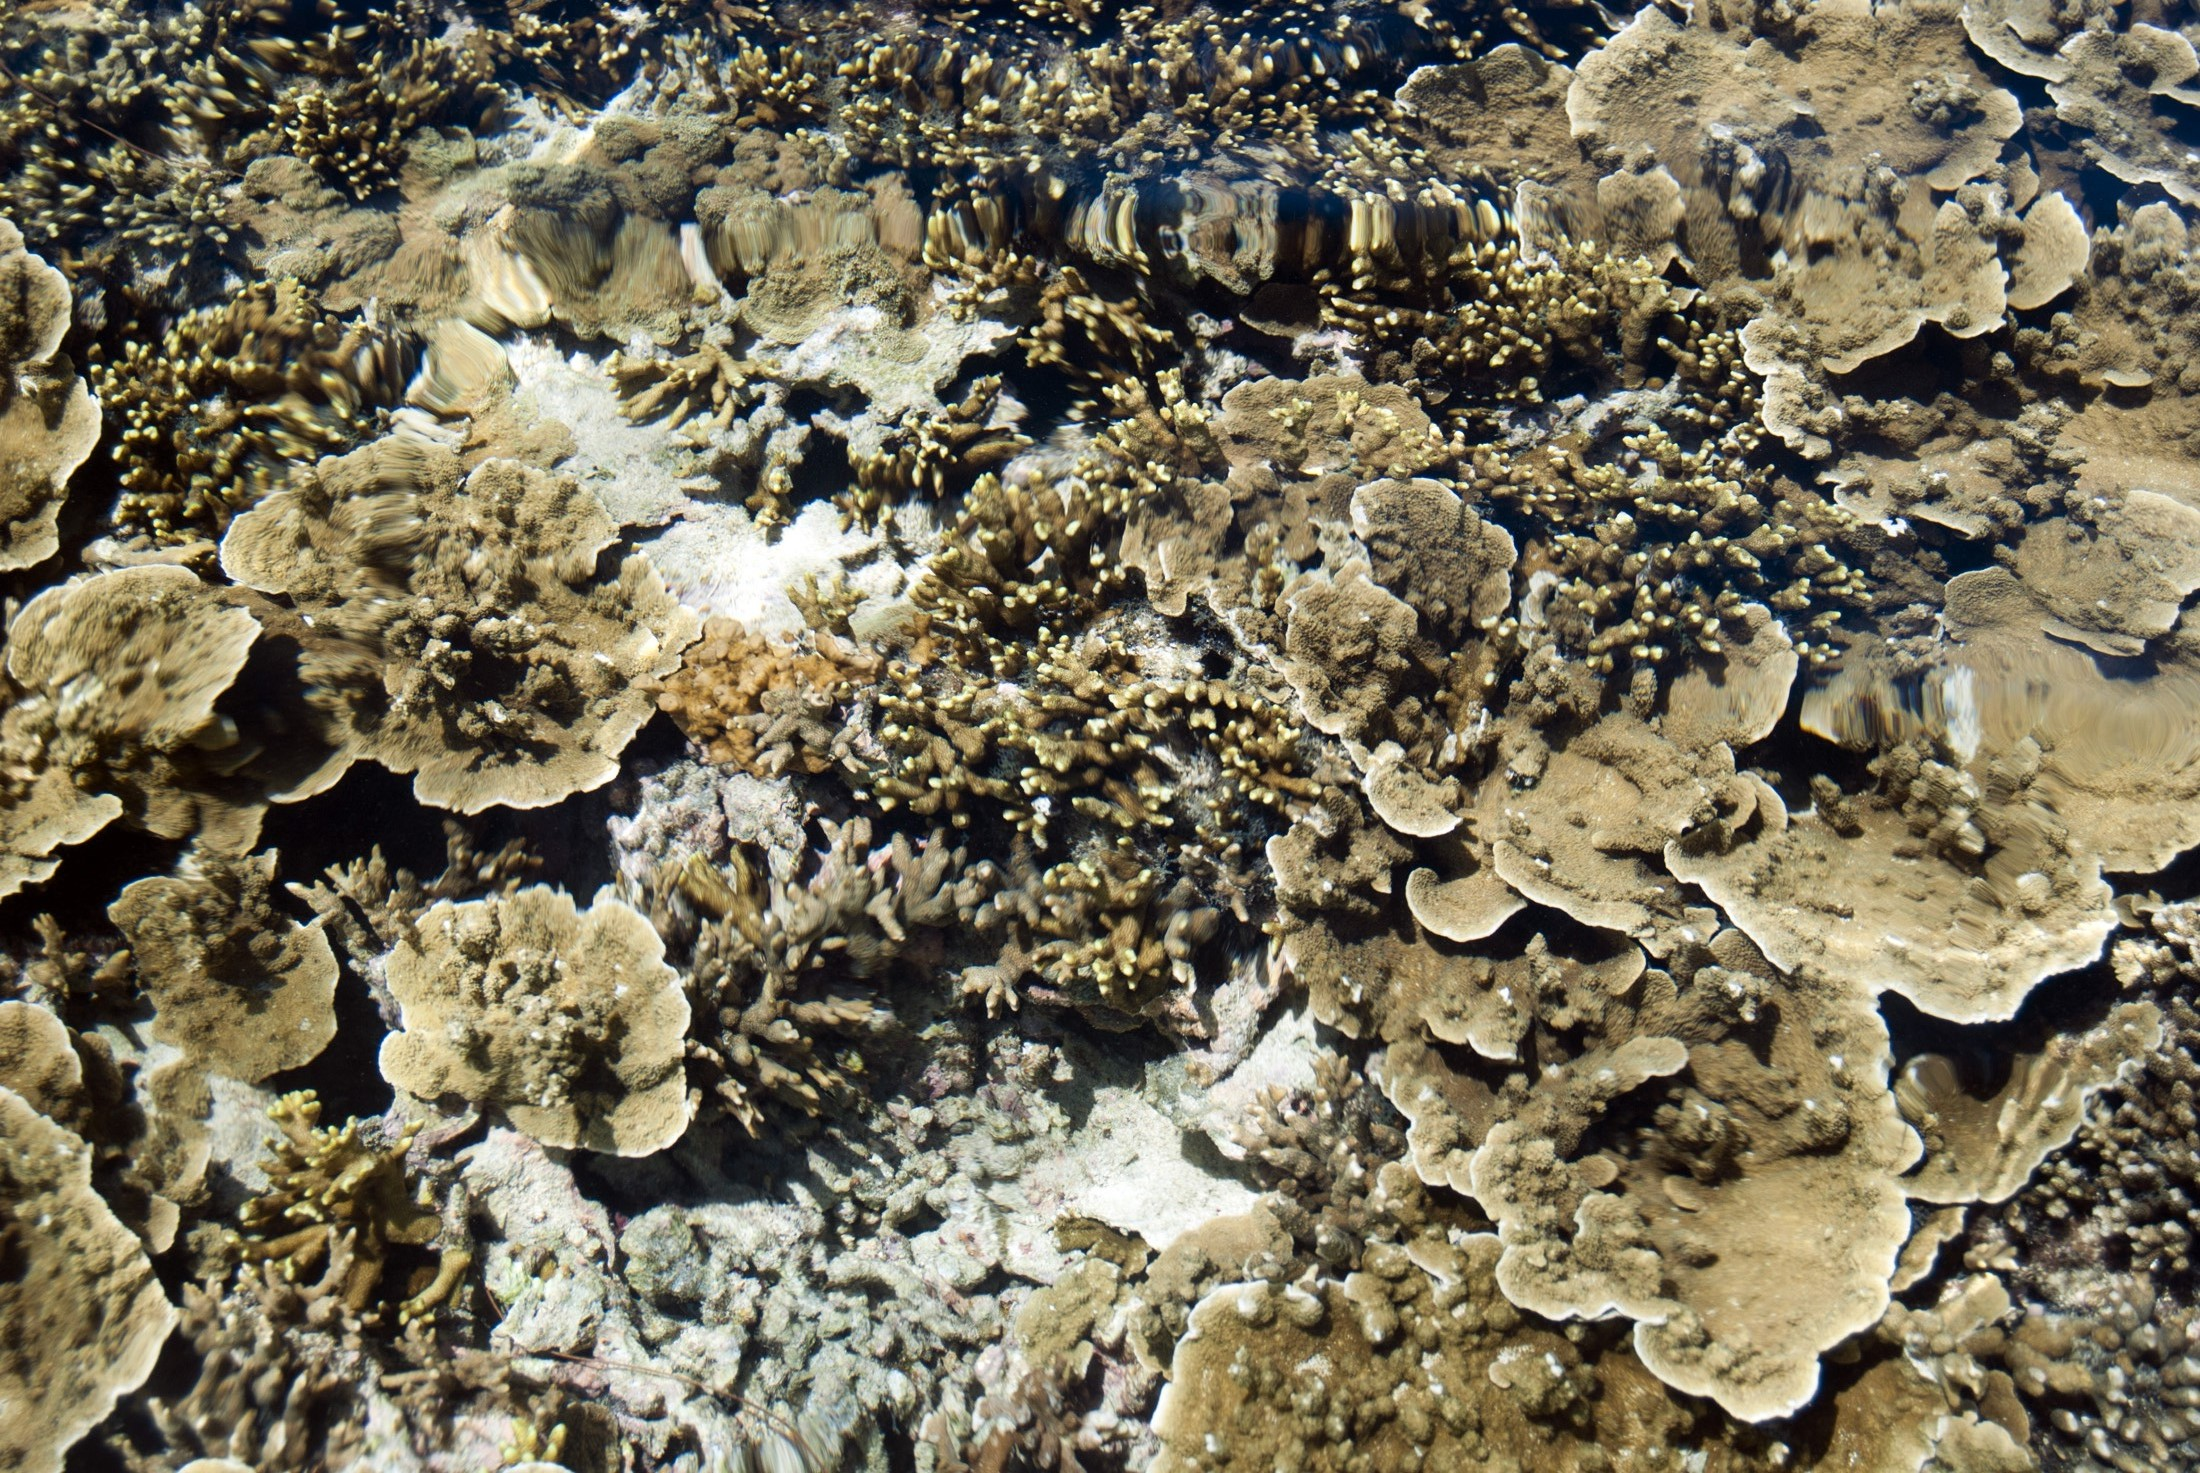 View of a coral reef in shallow water off Fiji with sponges, coral and other marine life